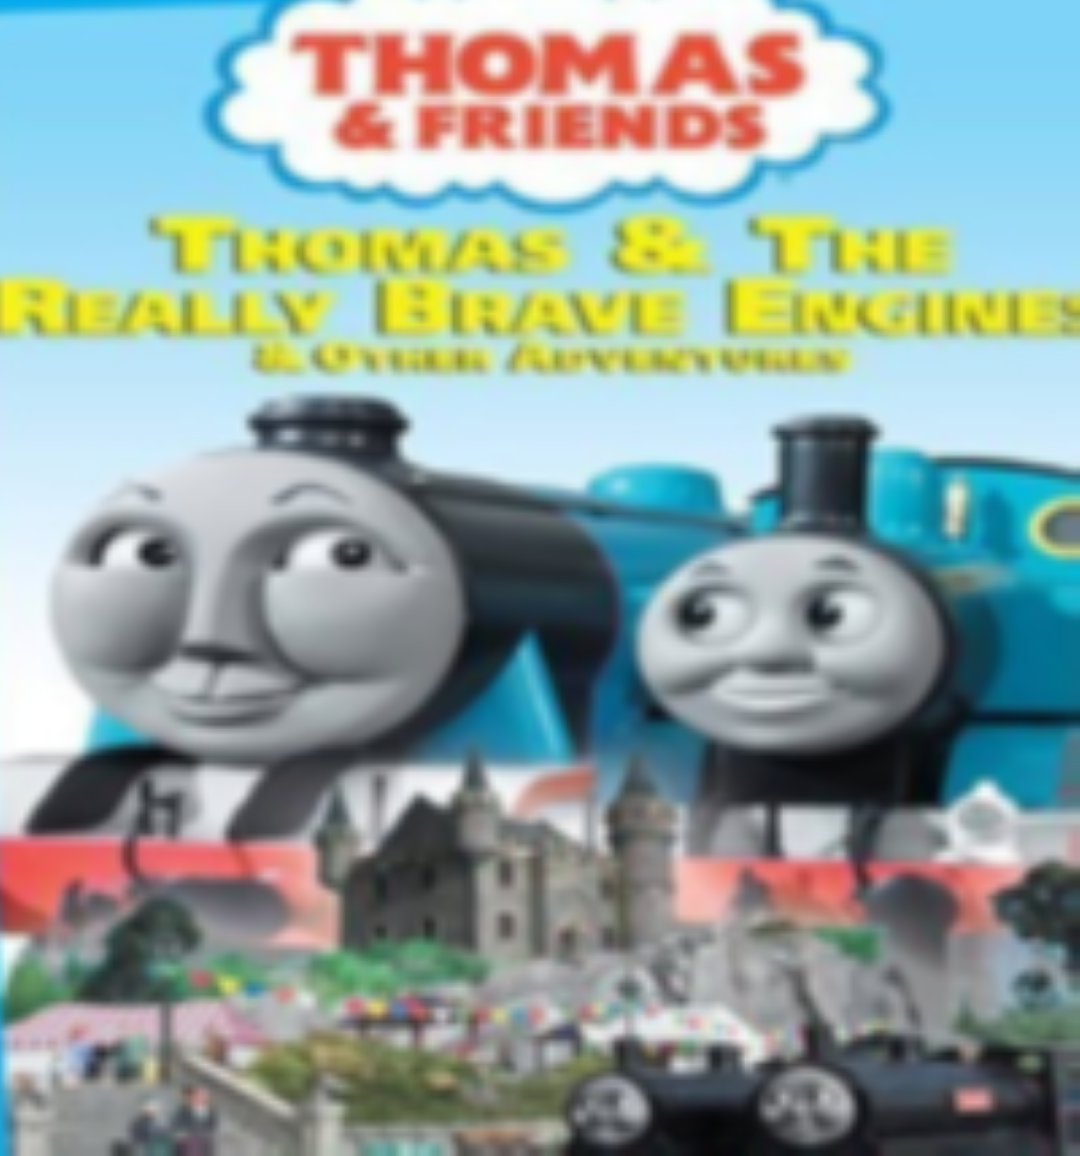 Thomas & Friends: Thomas & the Really Brave Engine Dvd